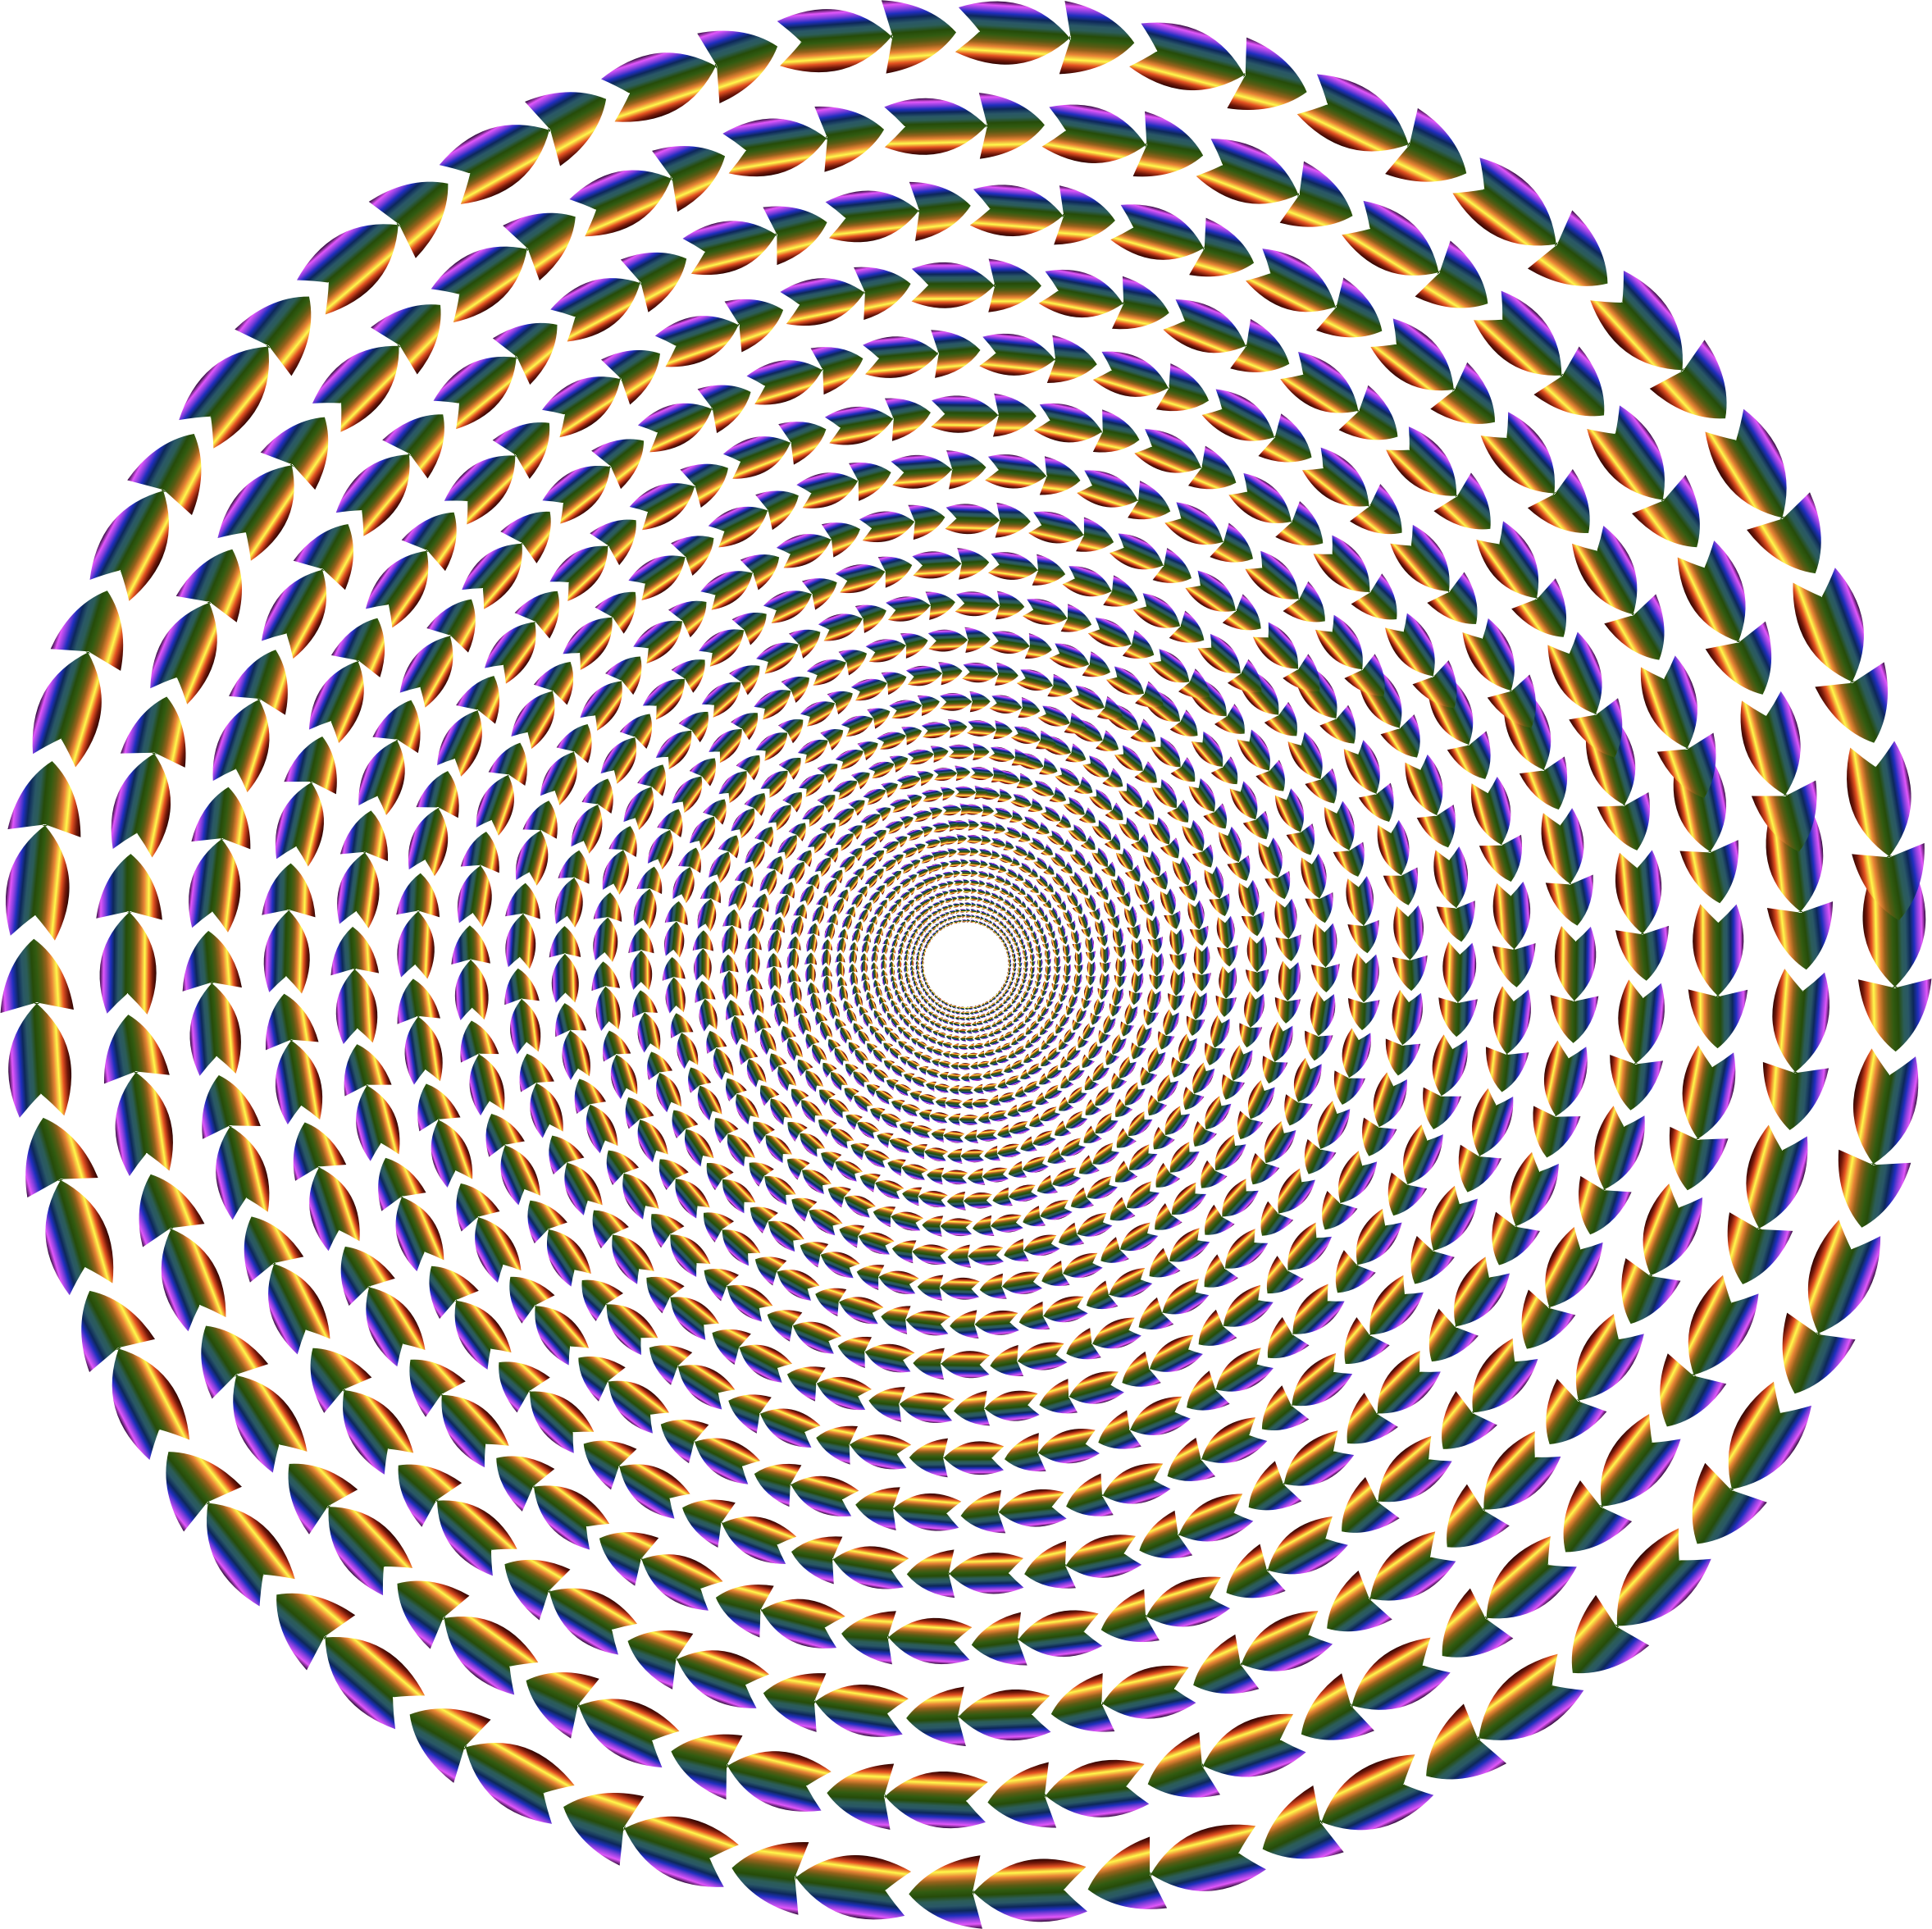 Colorful Direction Circle Vortex by GDJ